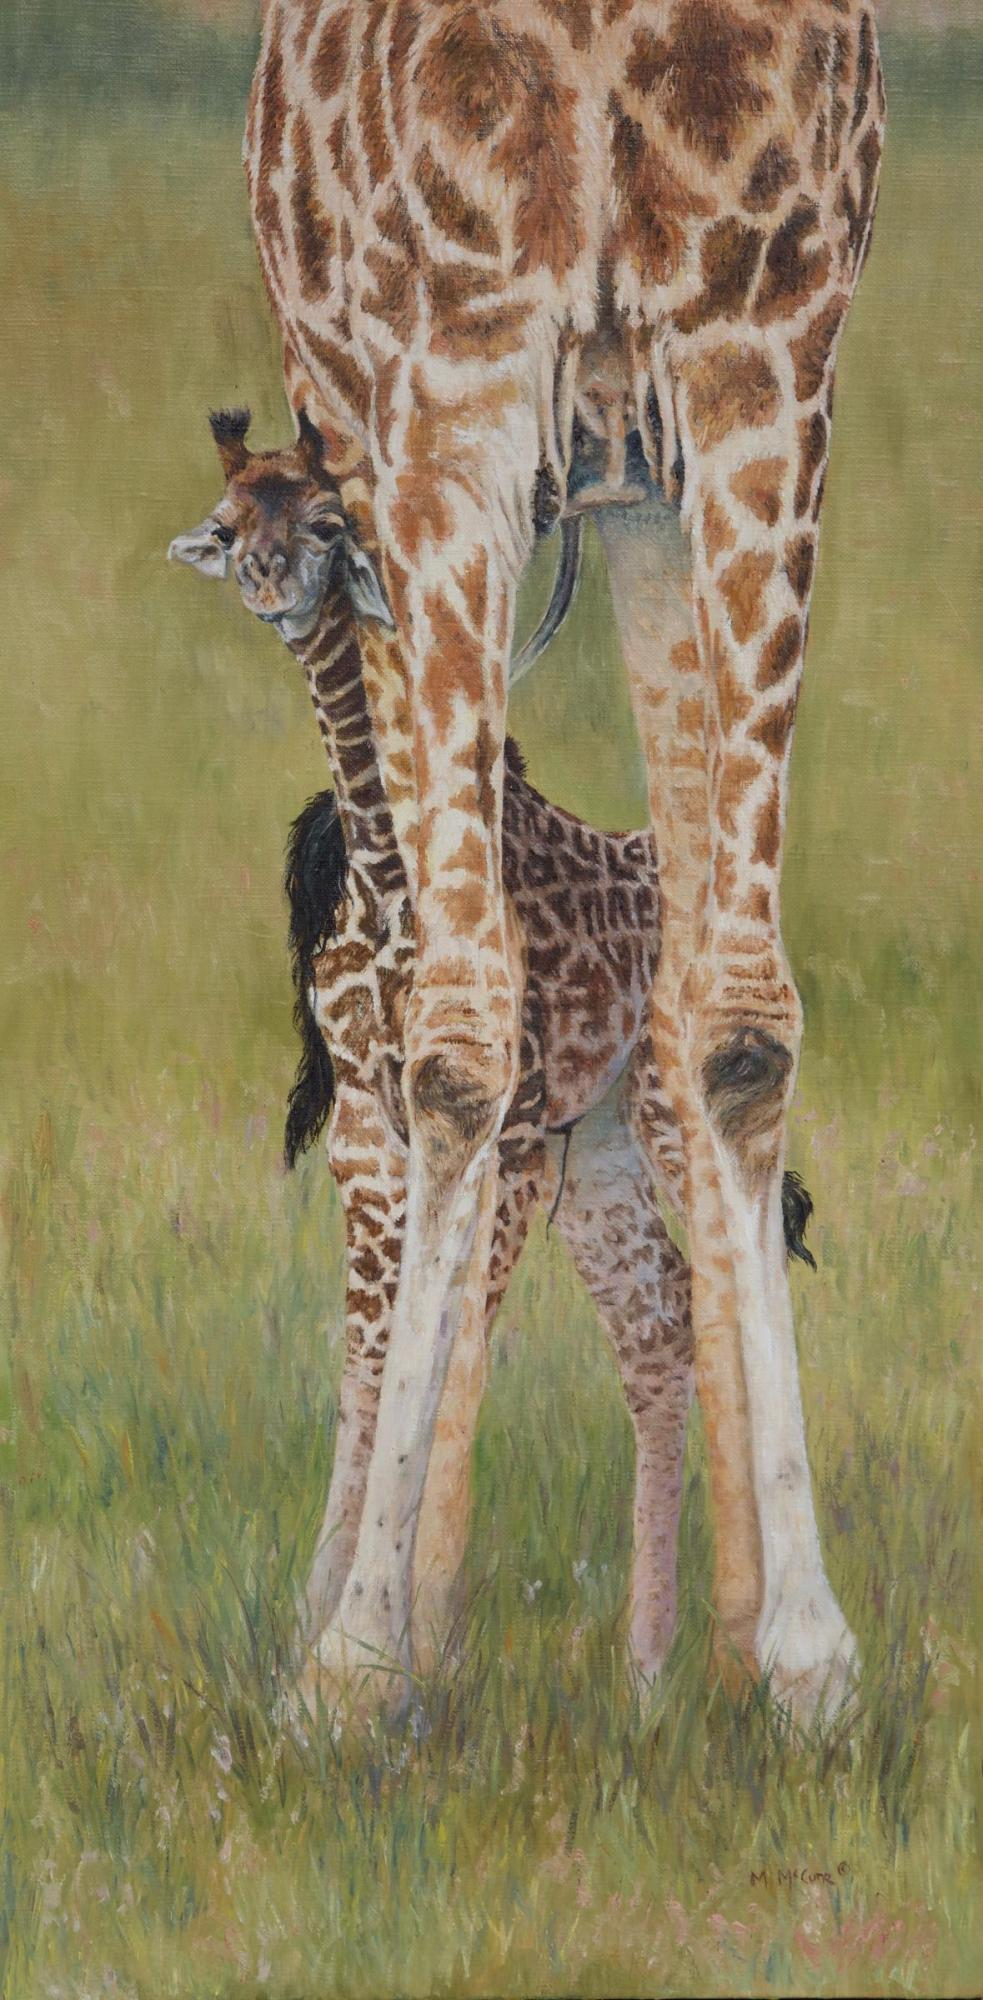 | Wallhanging by Michelle McCune | Artists for Conservation